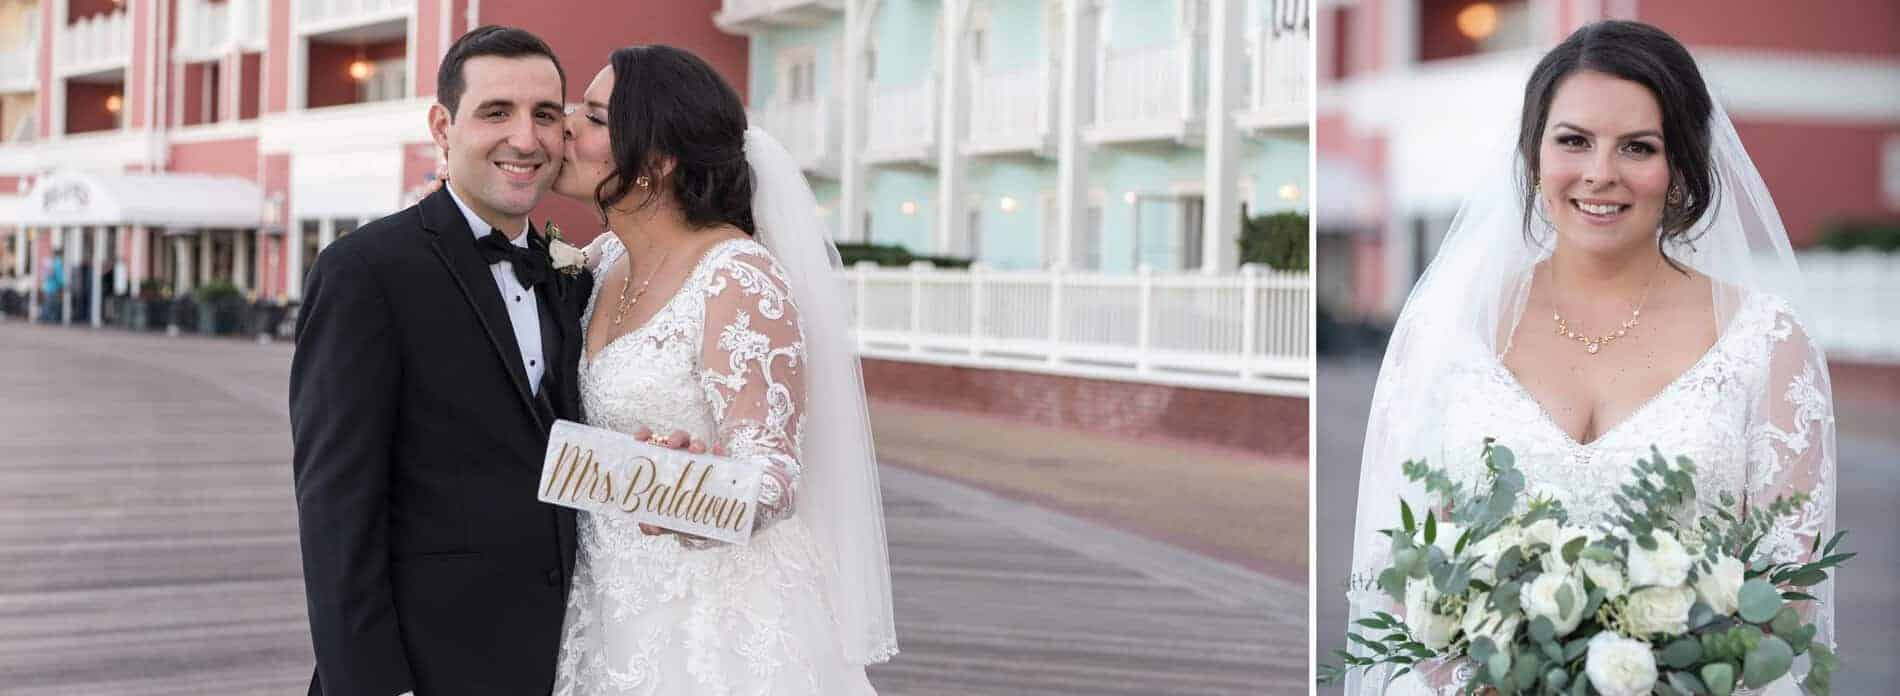 Bride and Groom Portraits at Disney Boardwalk Resort